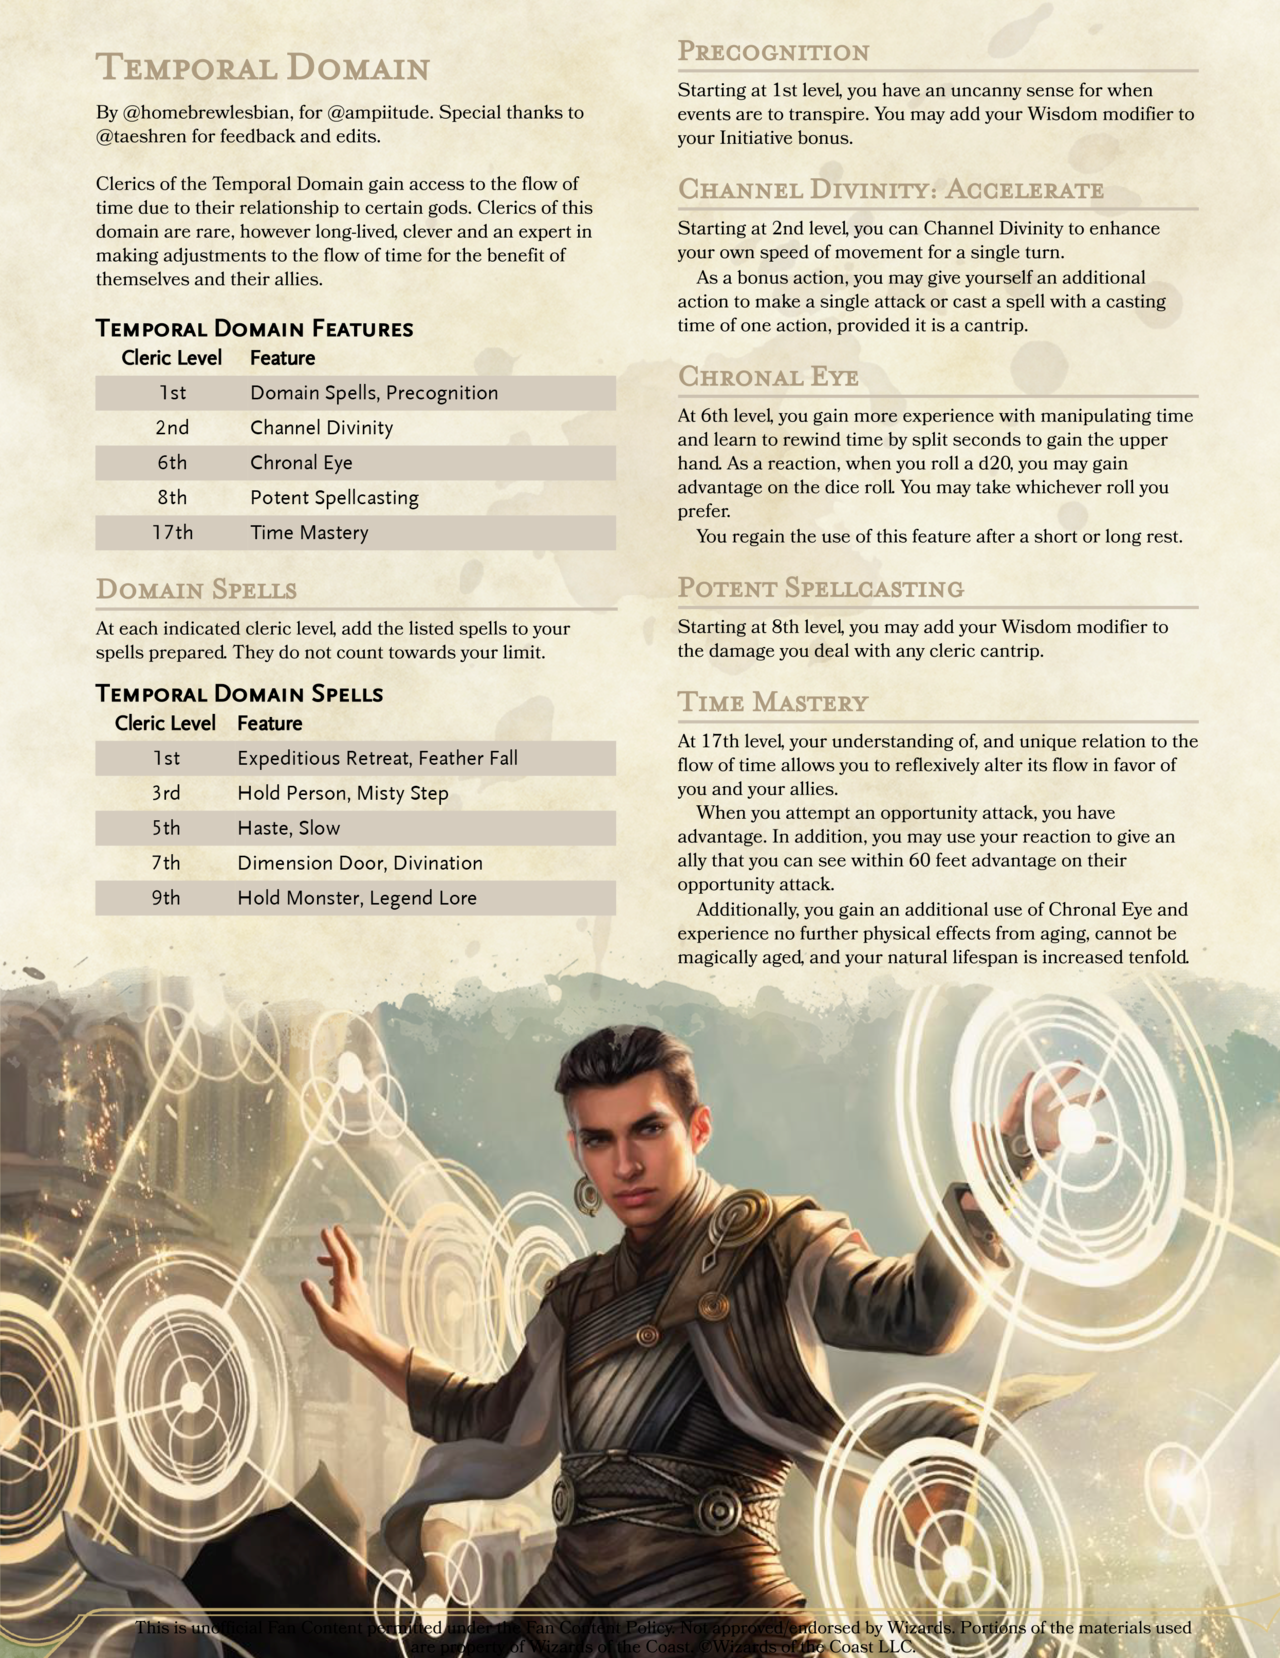 5E HOMEBREW AND RESOURCES — SPATIAL AND TEMPORAL DOMAINS—so temporal domain...